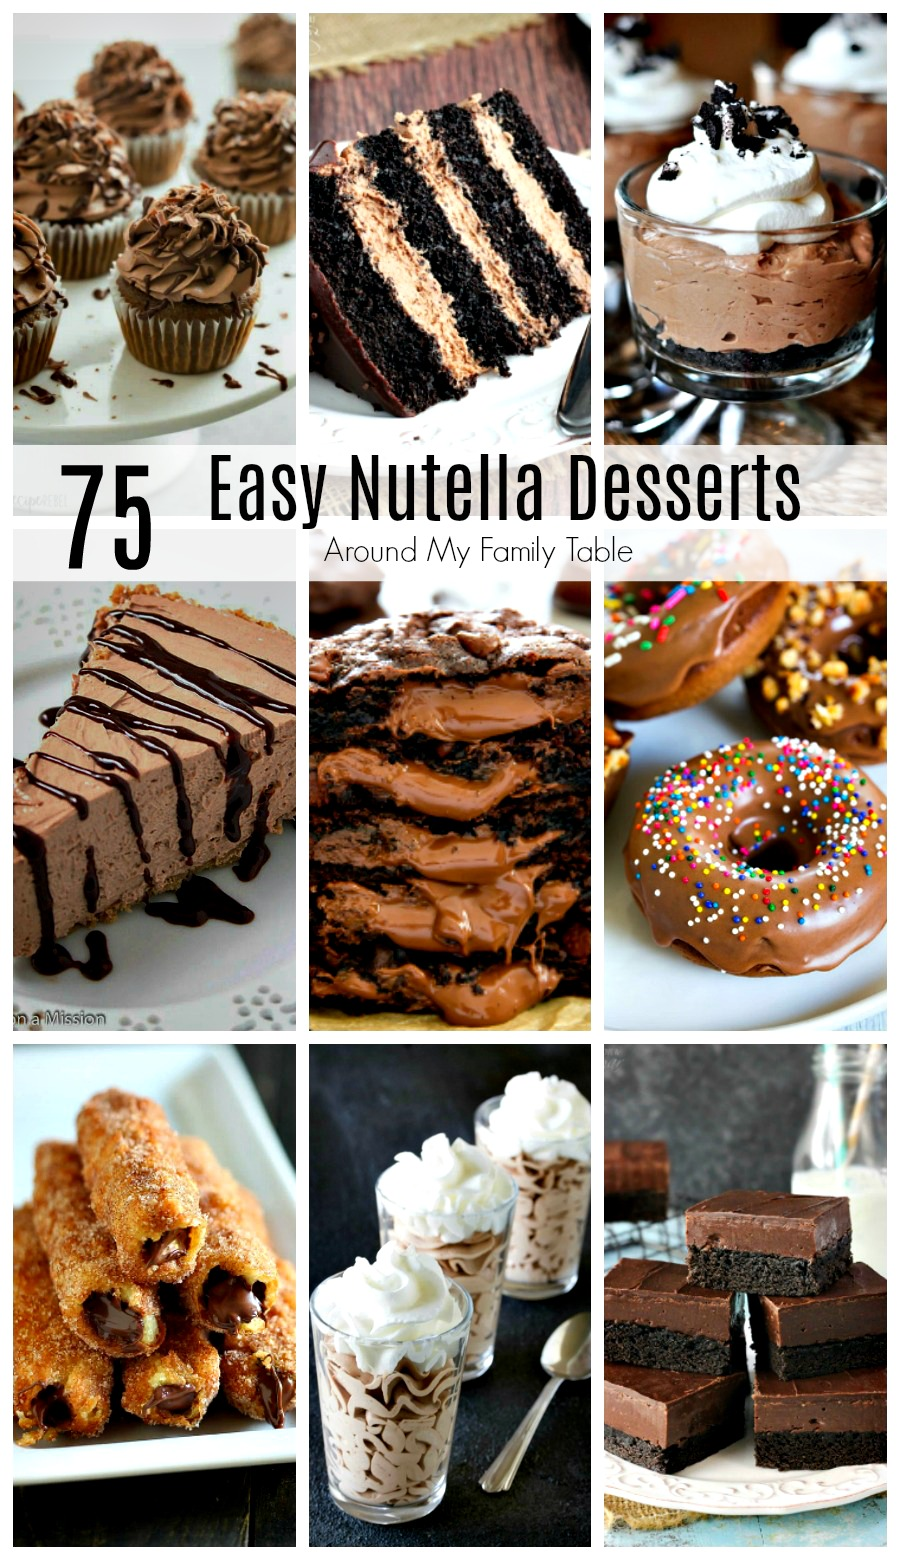 75 of the best Nutella Dessert Recipes all in one place! This list includes all of my favorite Nutella desserts that are sure to satisfy your chocolate cravings.#nutella #nutelladesserts #nutelladay